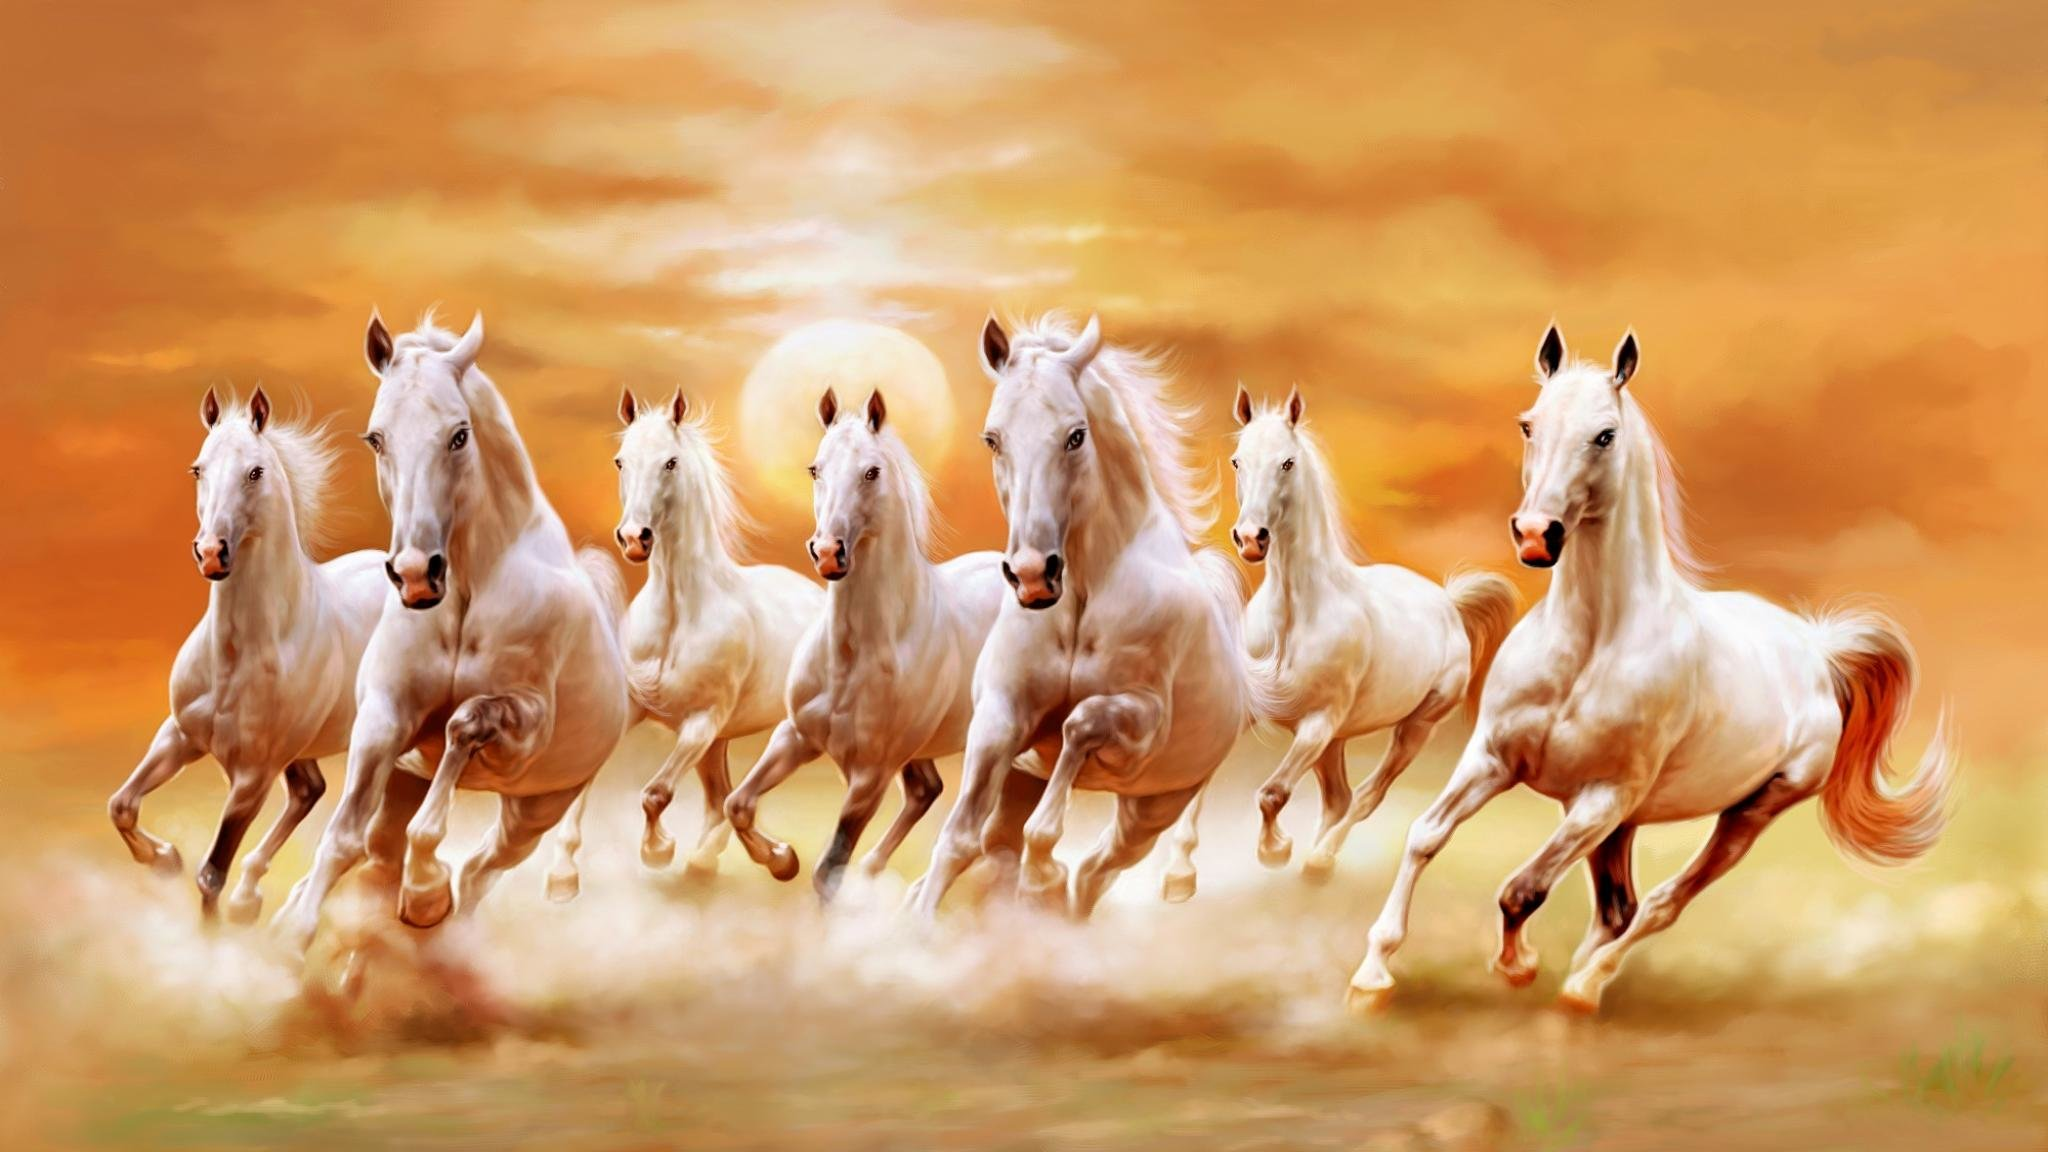 Download hd 2048x1152 Horse PC background ID:23196 for free